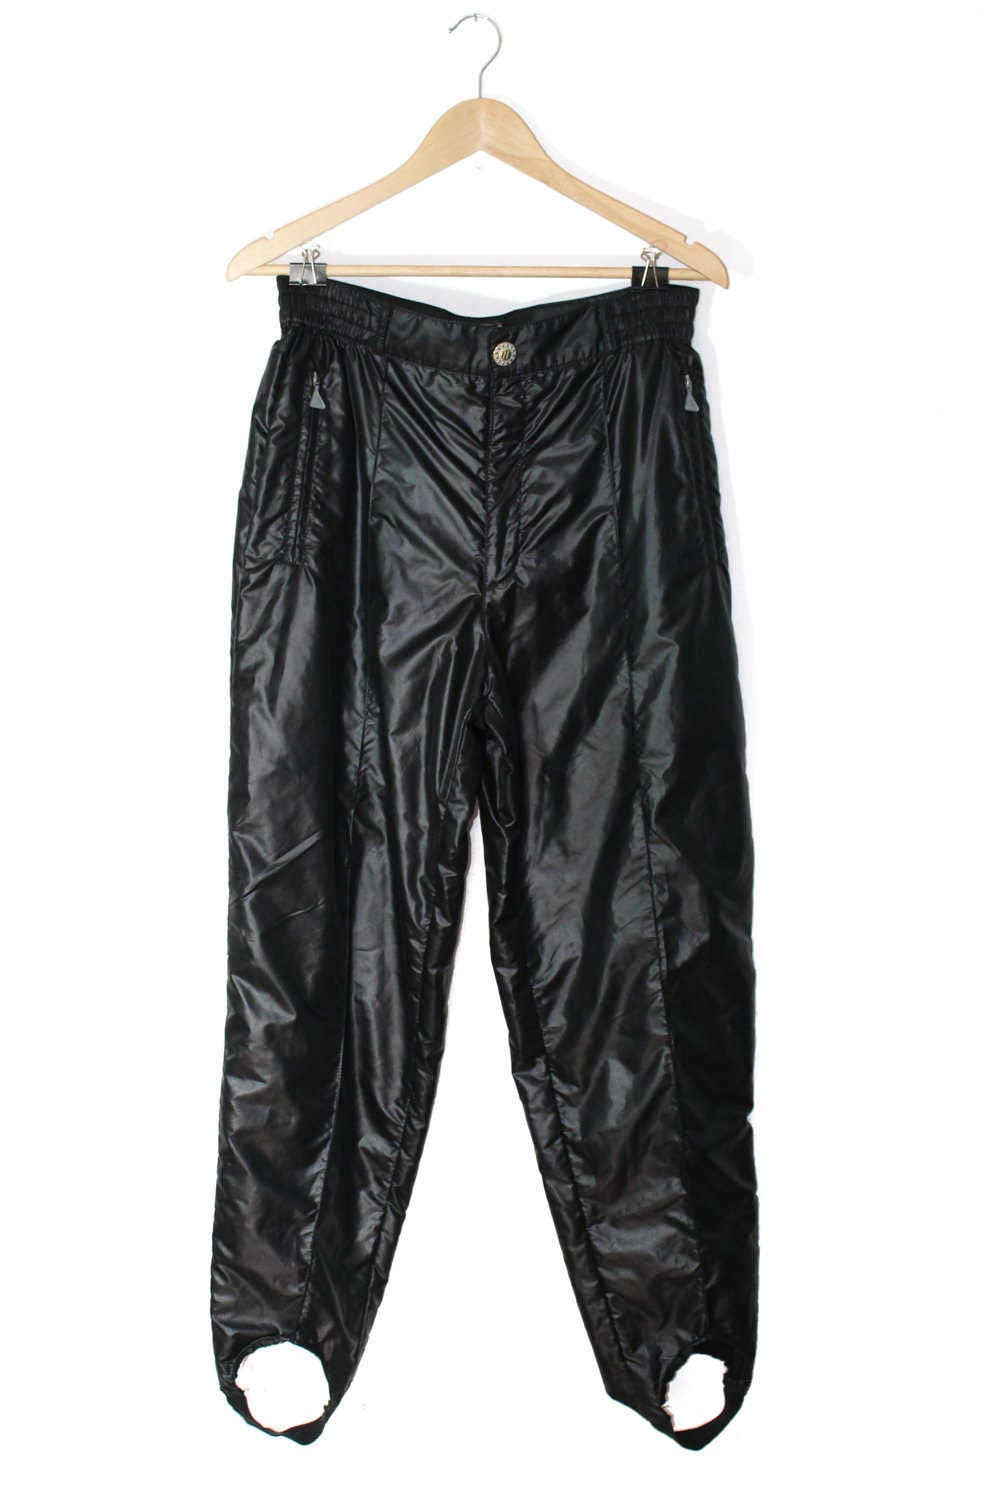 1980s parachute pants shiny black pants stirrups aesthetic